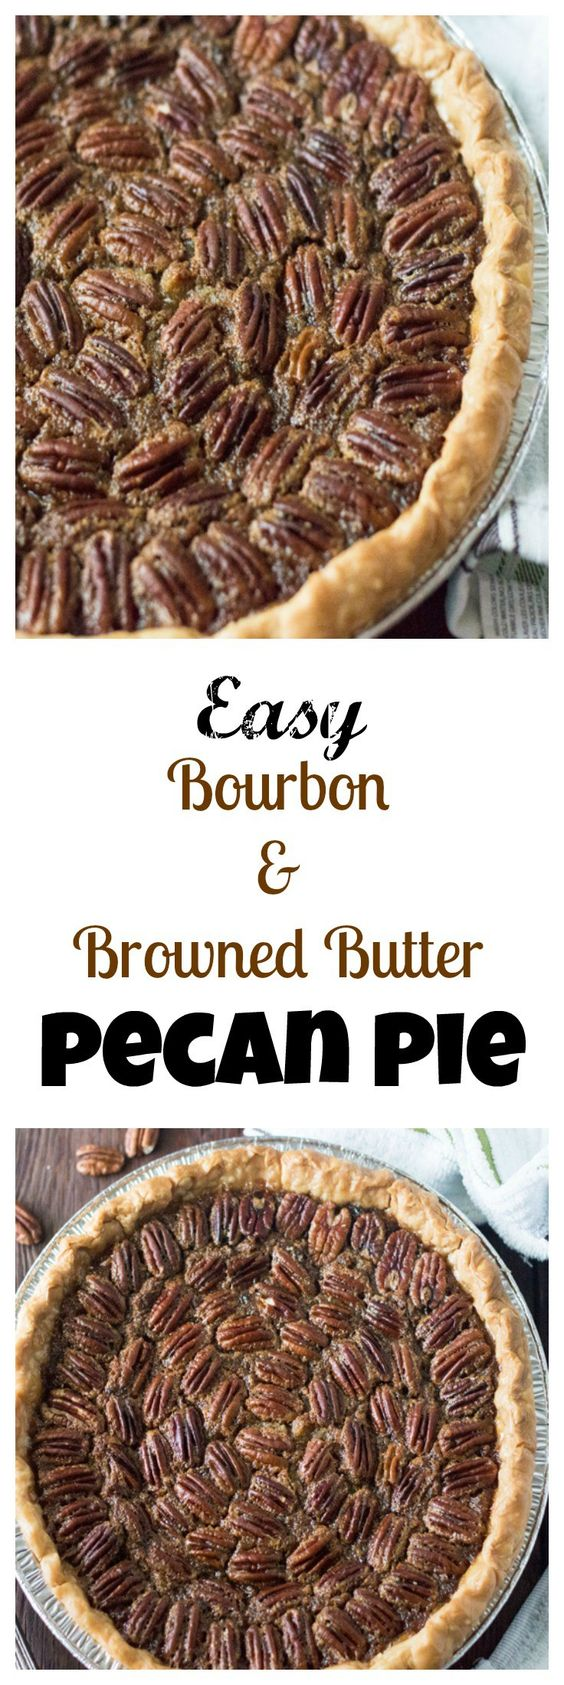 Browned Butter Pecan Pie. This Bourbon and Browned Butter Pecan Pie ...